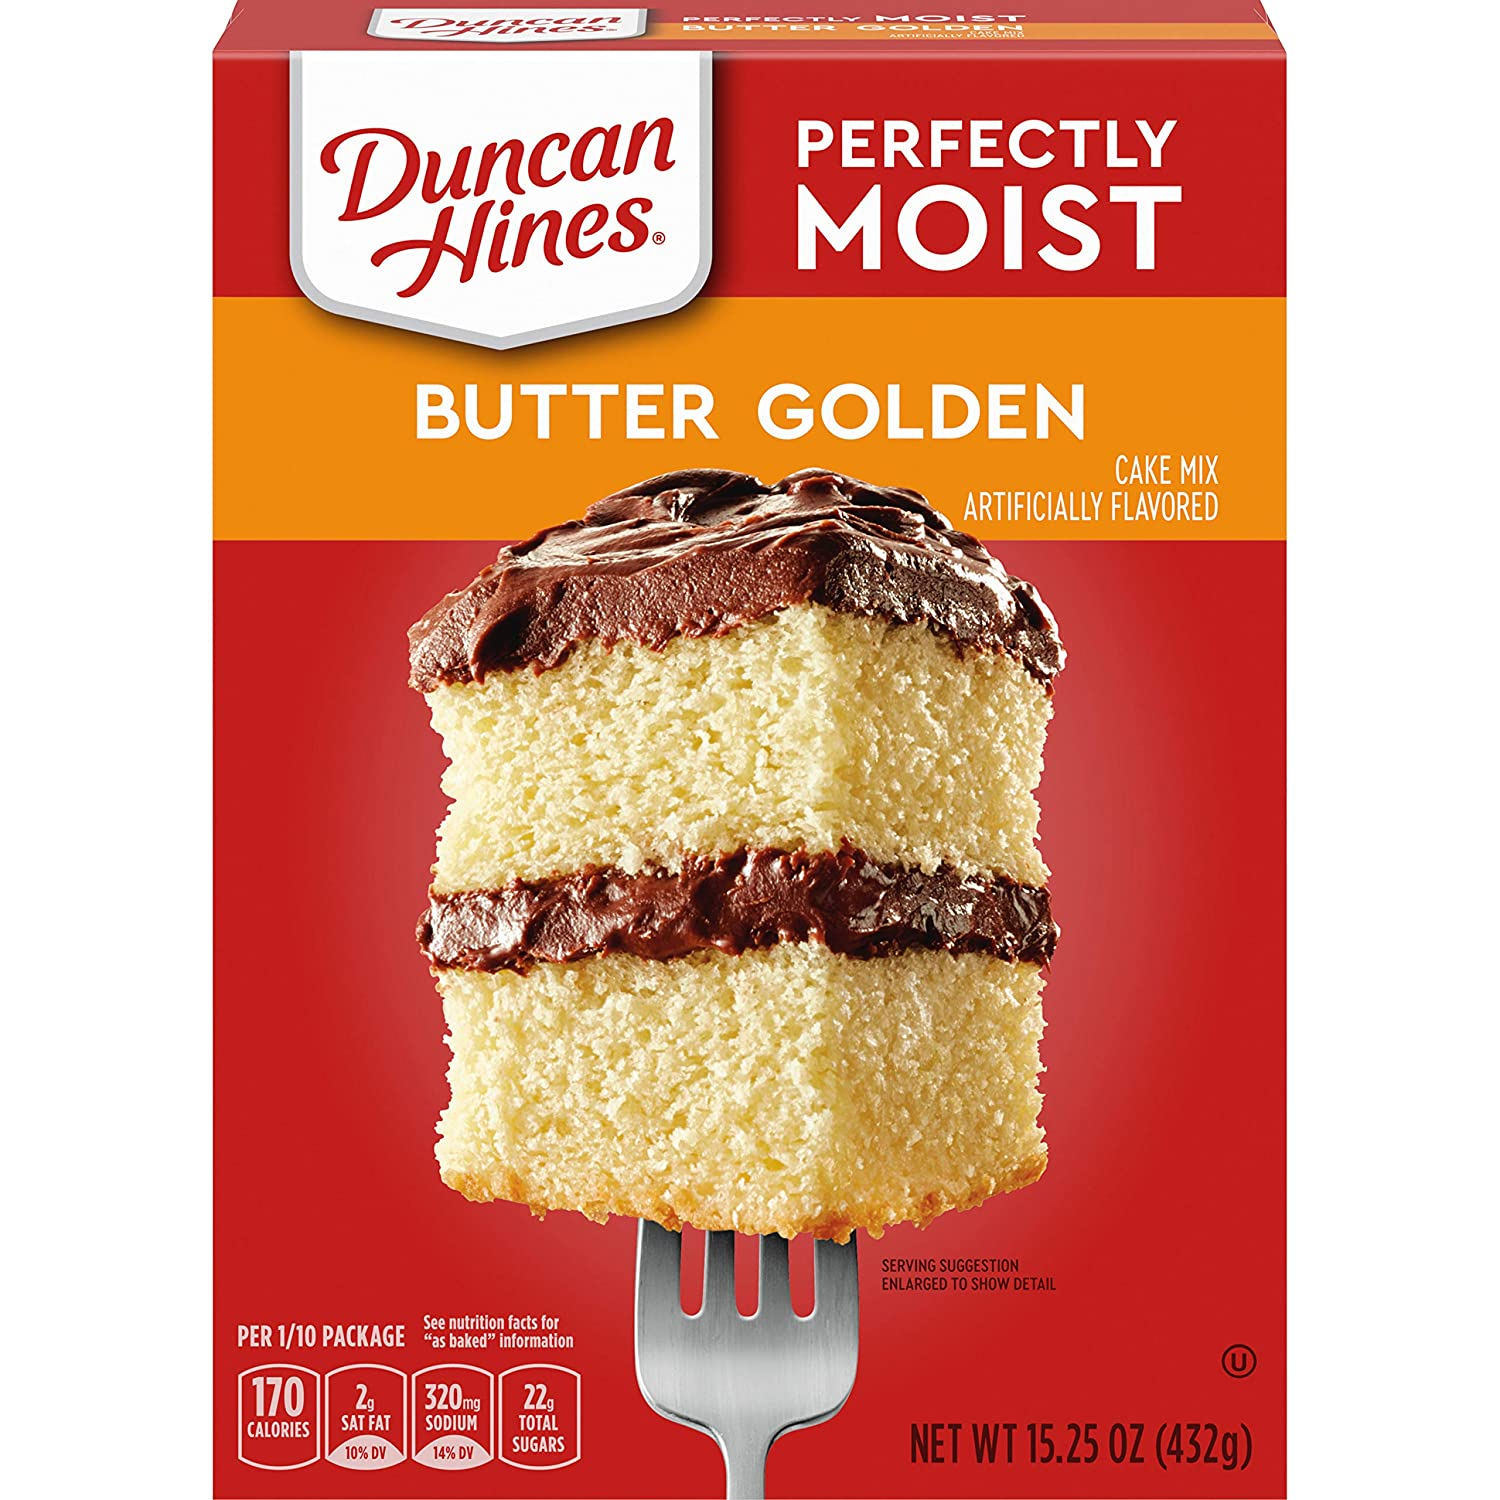 Duncan Hines Max 43% OFF Signature Golden Butter Mix Pack Cake Limited price 3 Recipe